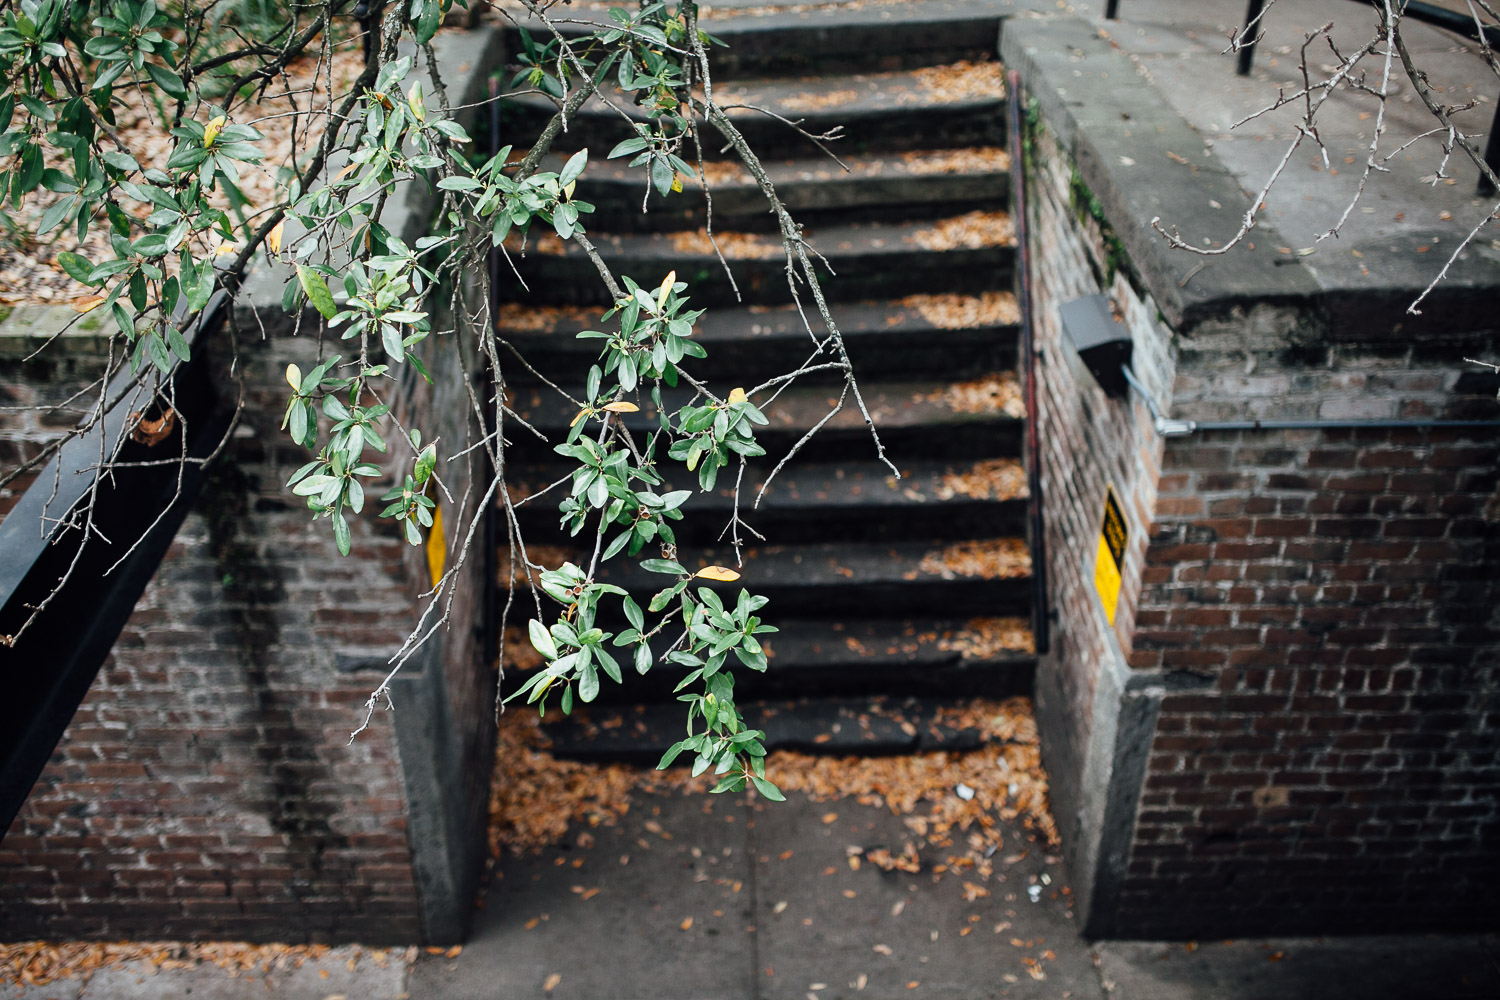 Savannah Georgia - juliette fradin photography_.jpg